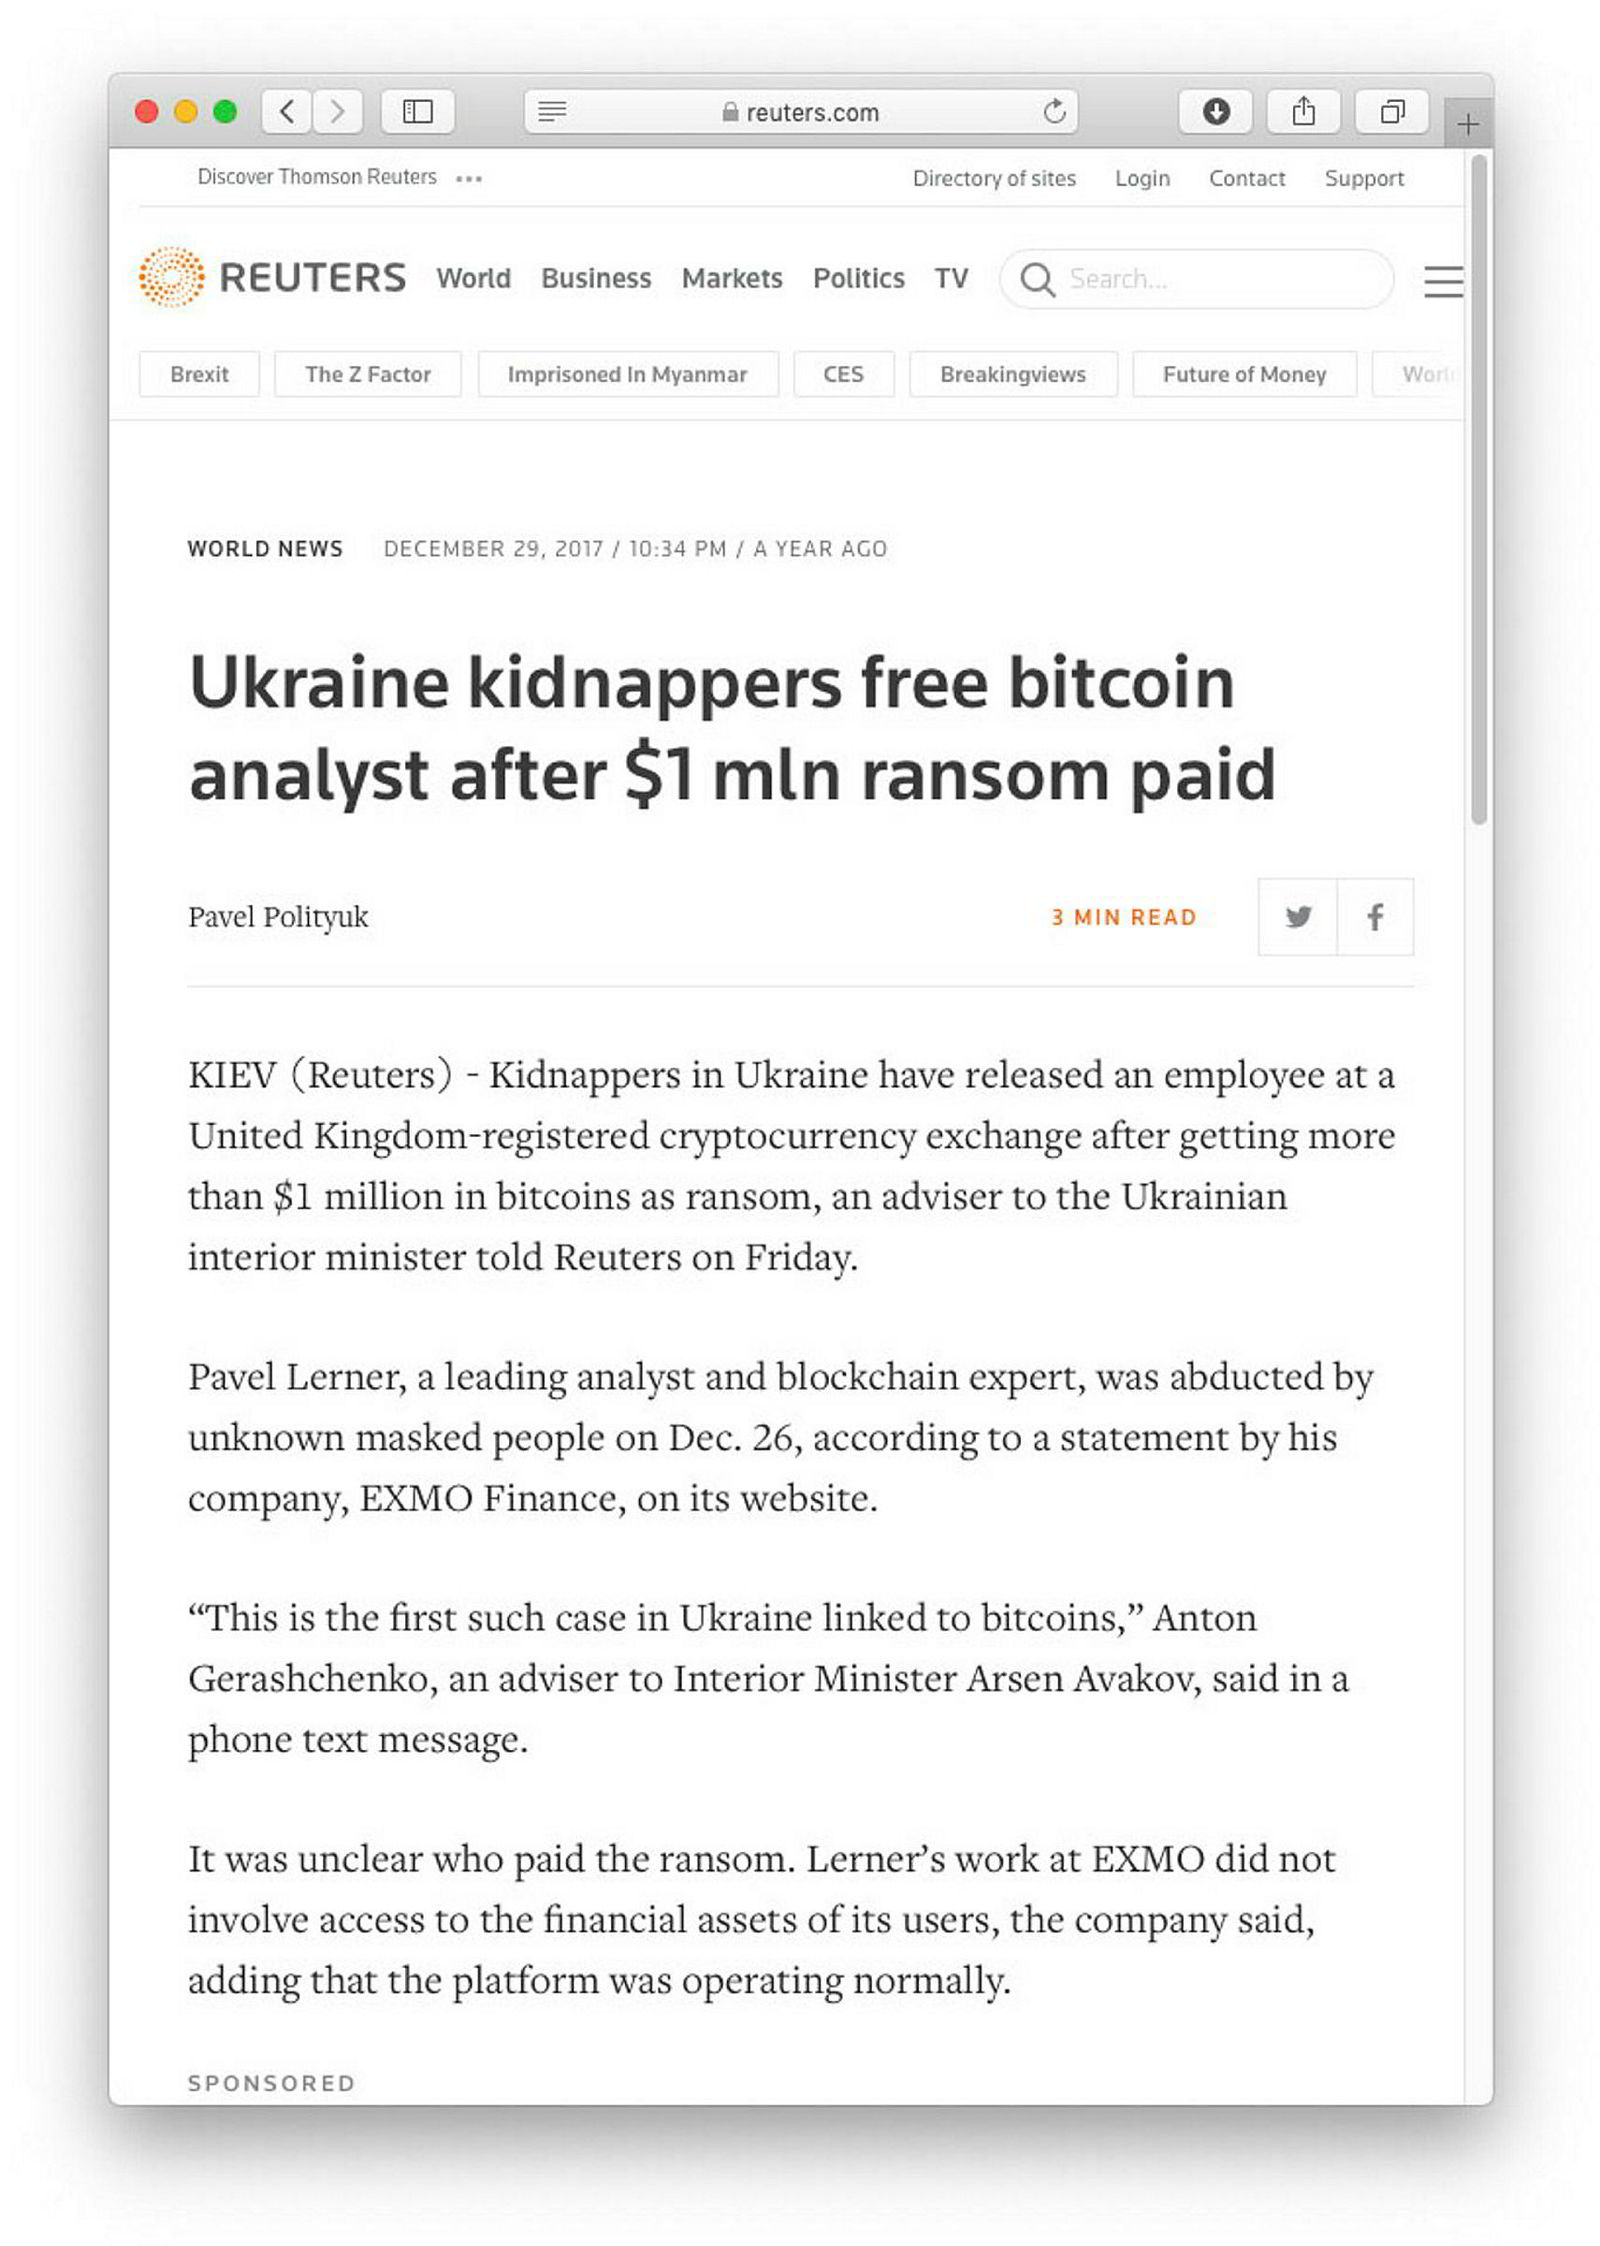 Pavel Lerner, sjef i kryptoselskapet Exmo Finance kidnappet i Ukraina